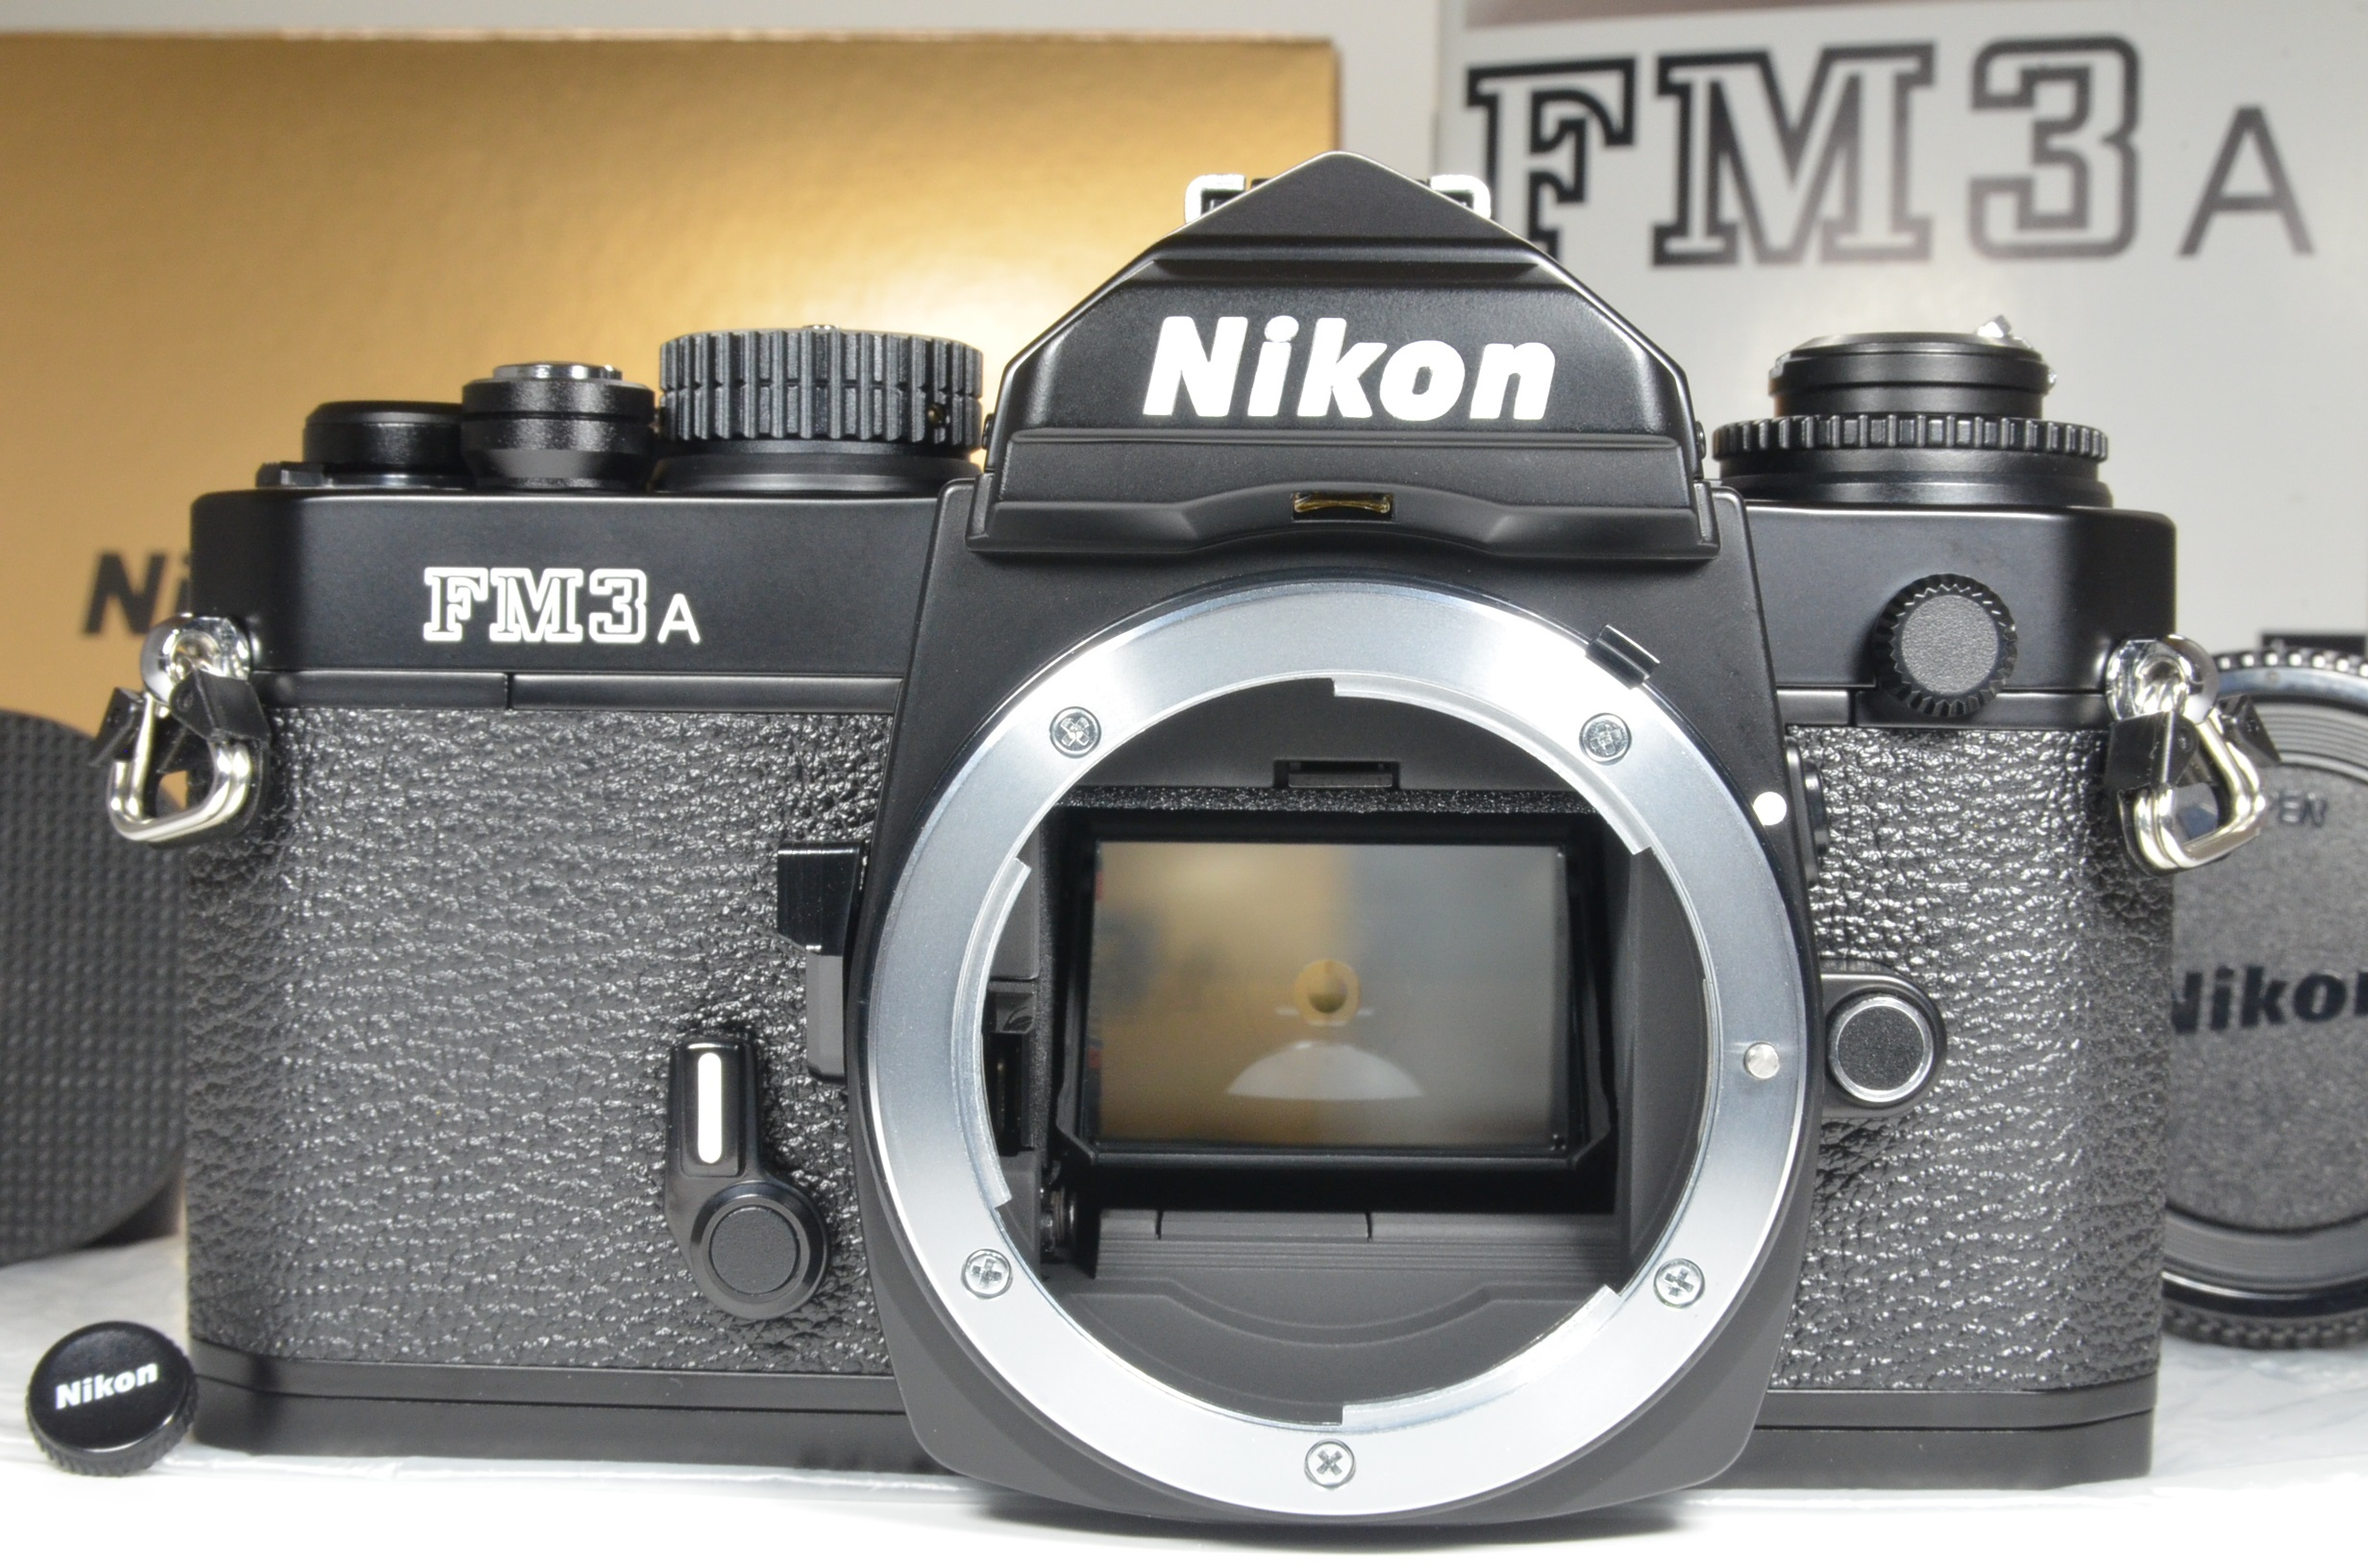 nikon fm3a 35mm film camera black with shutter release